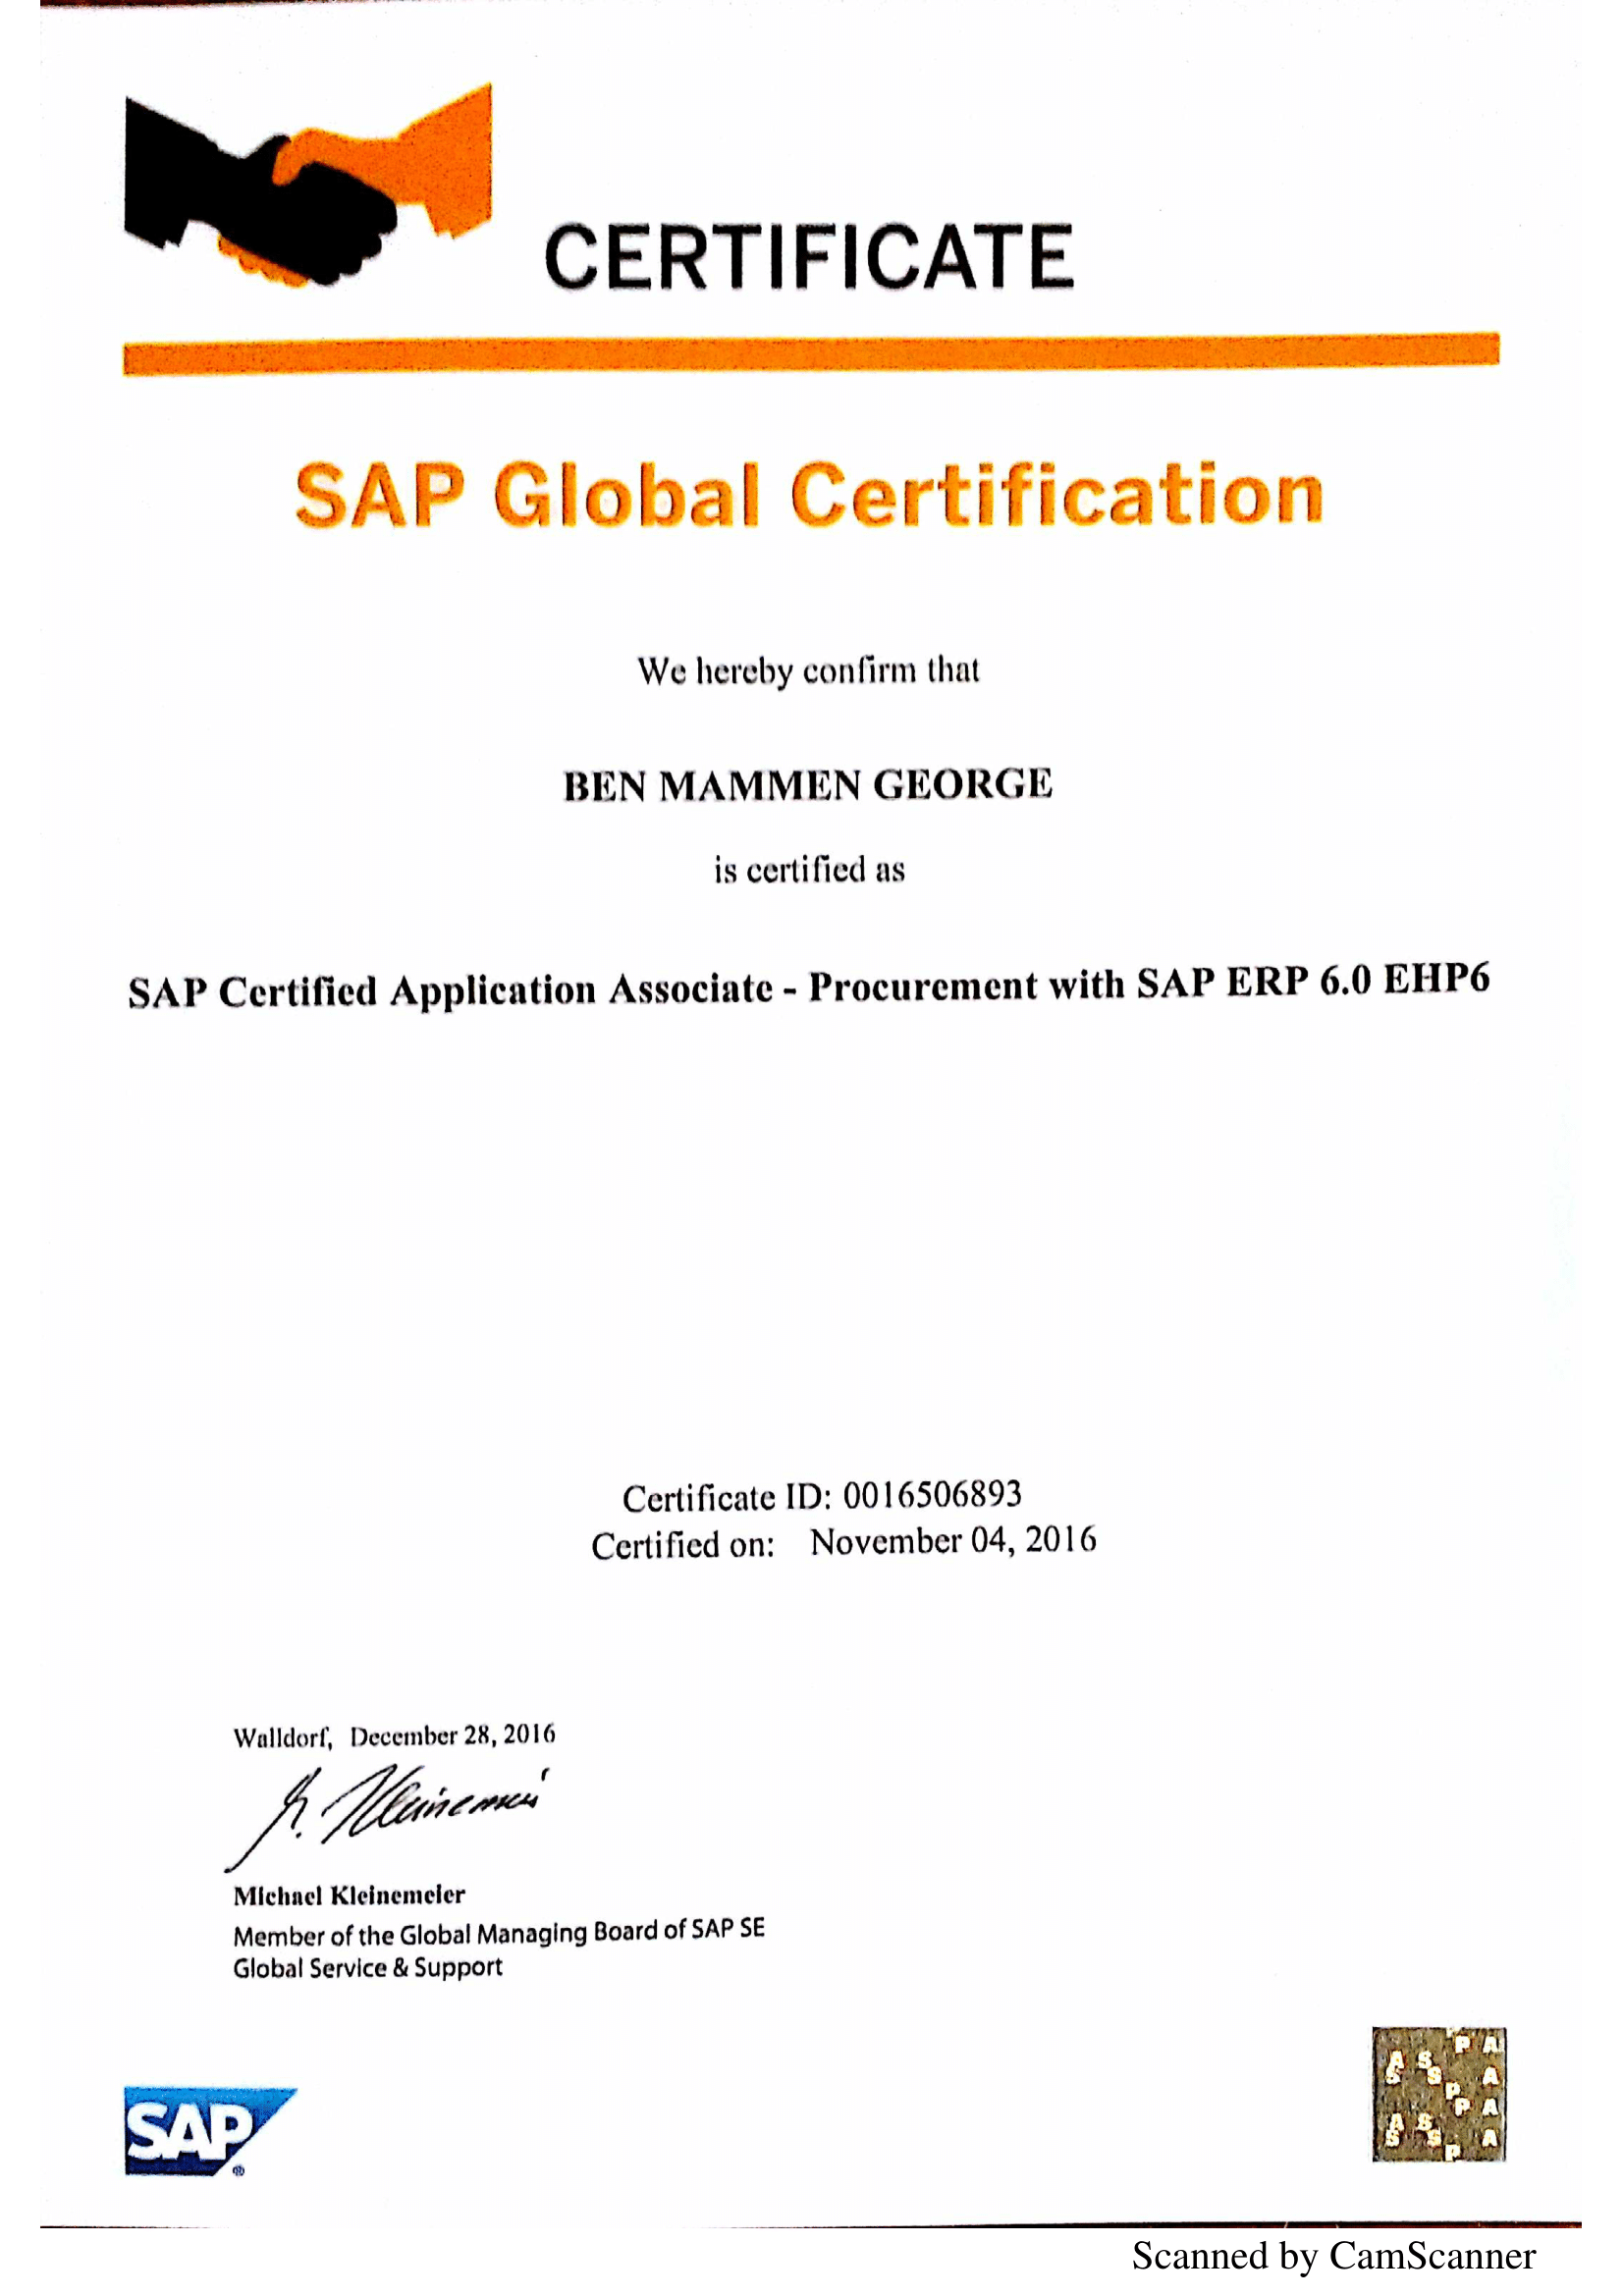 Testimonials the smart hands have cleared my sap mm certification with 91 i am extremely thankful for your video tutorialthat helped me to understand various aspects thoroughly baditri Image collections